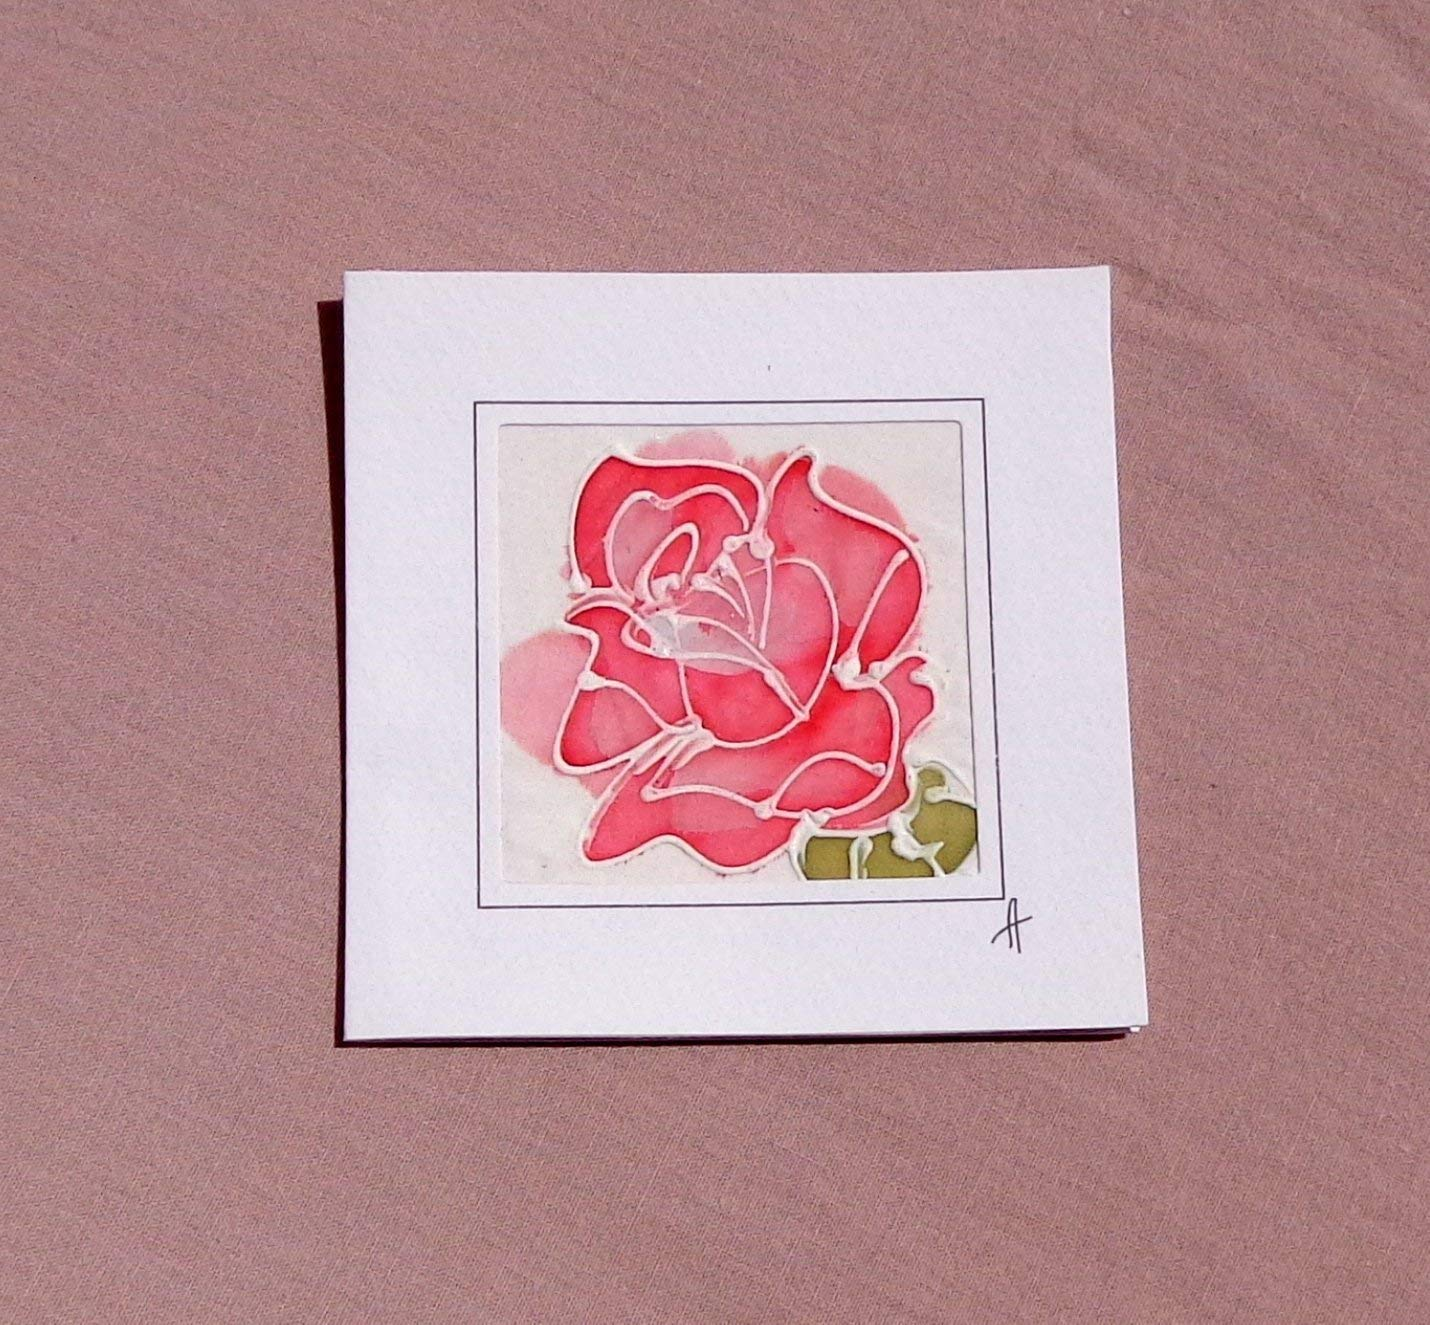 Sale!!!20% Off,Rose Love,The Rose-Queen of Flowers,Romantic Red Rose Card, Rose Birthday Card, Unique silk painting card, Rose Gift, Card Rose, Wedding Card, Flower Greeting Card, Rose Mother's Day.